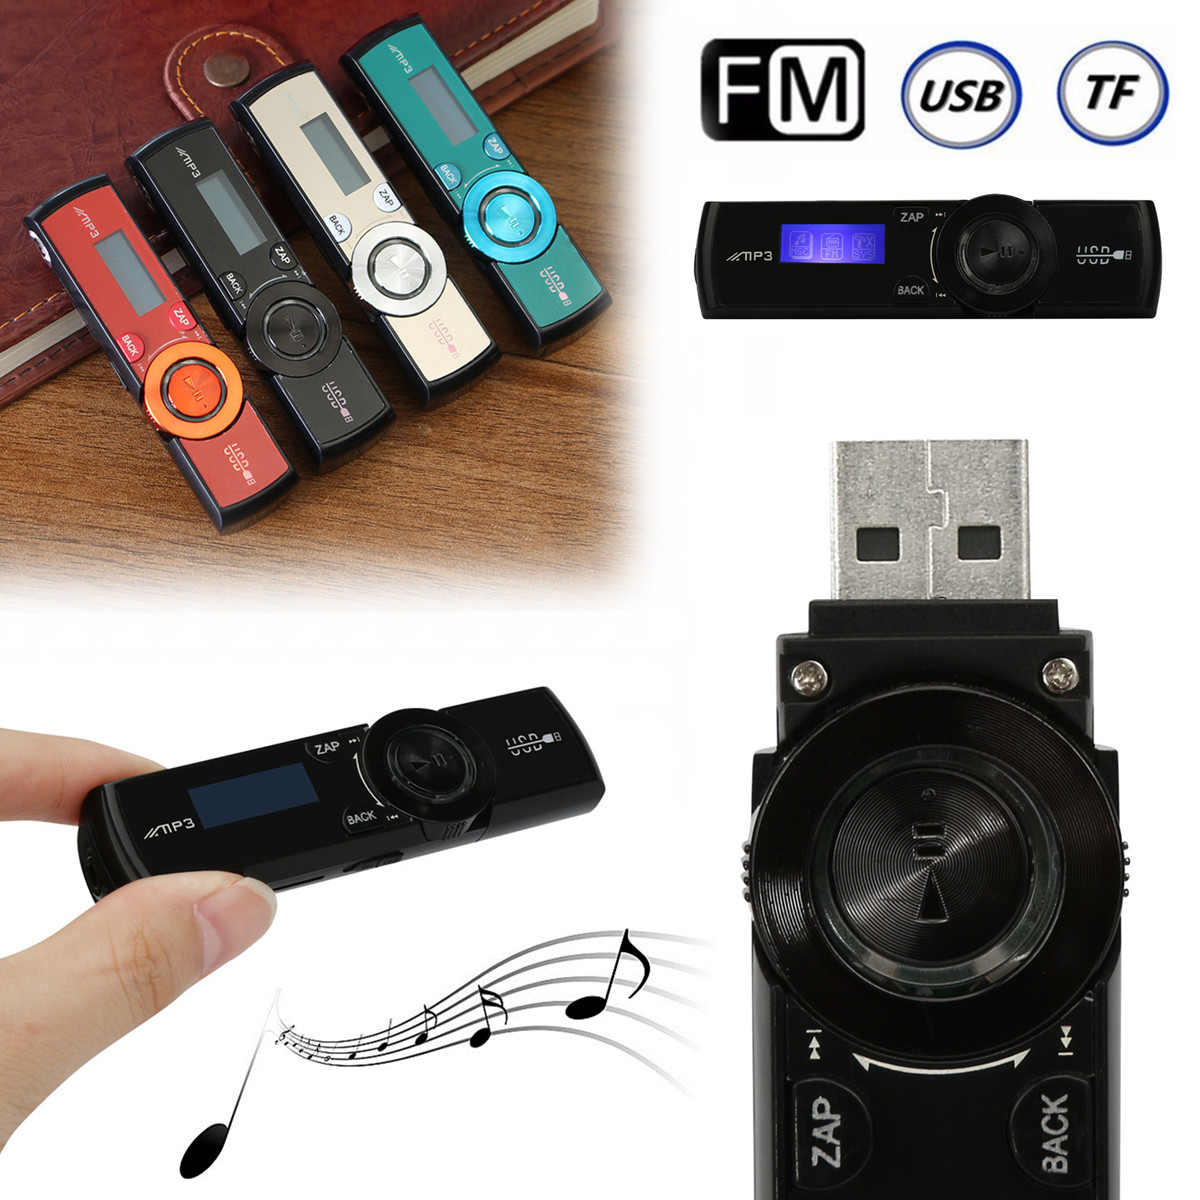 Multifunctional LCD USB MP3 Player Media FM Radio Micro SD TF Card with Headphones